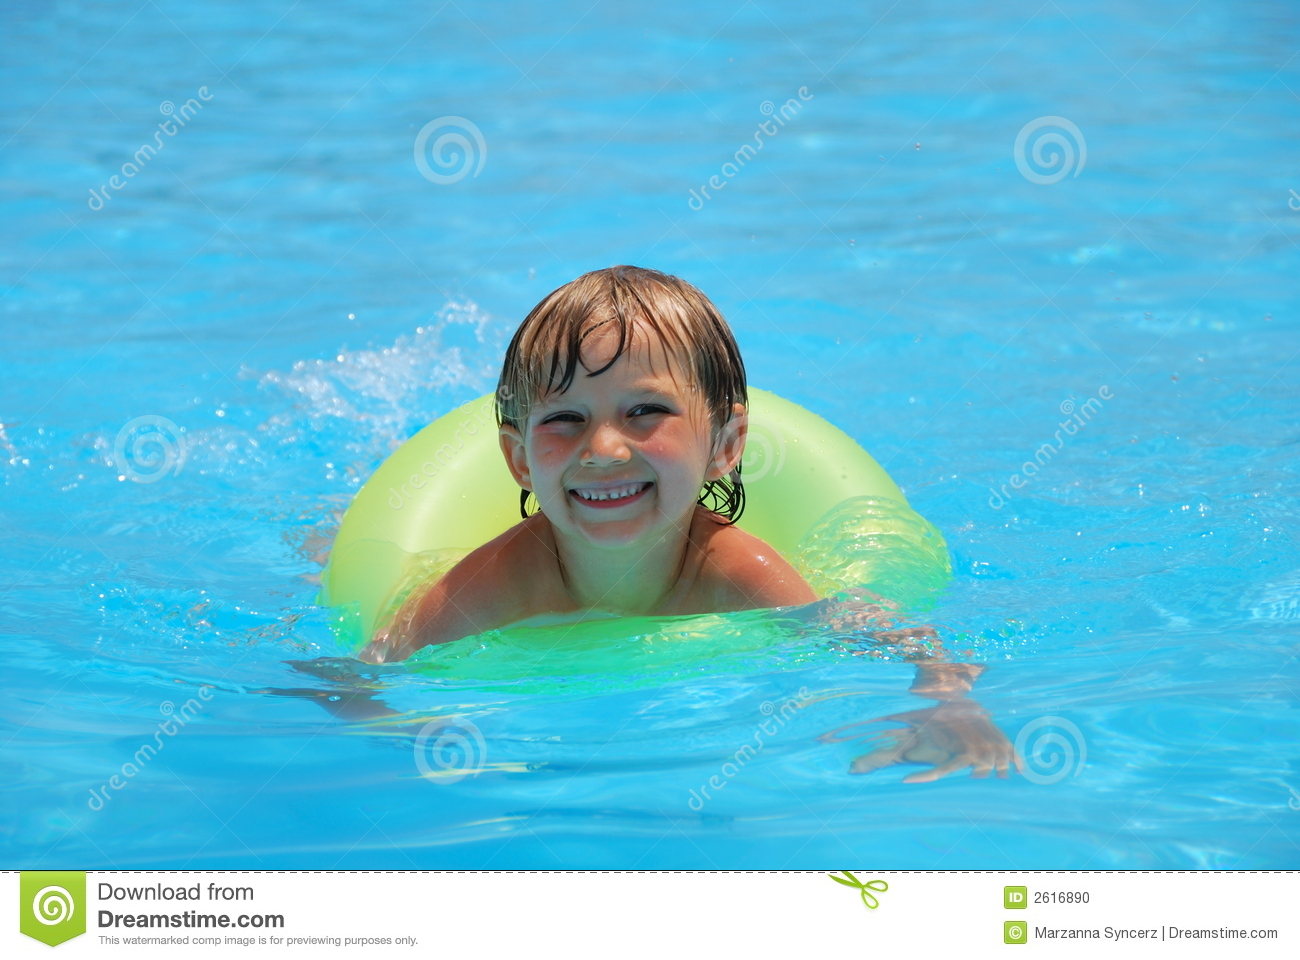 Boy Playing In Pool Inner Tube Stock Photo - Image: 2616890